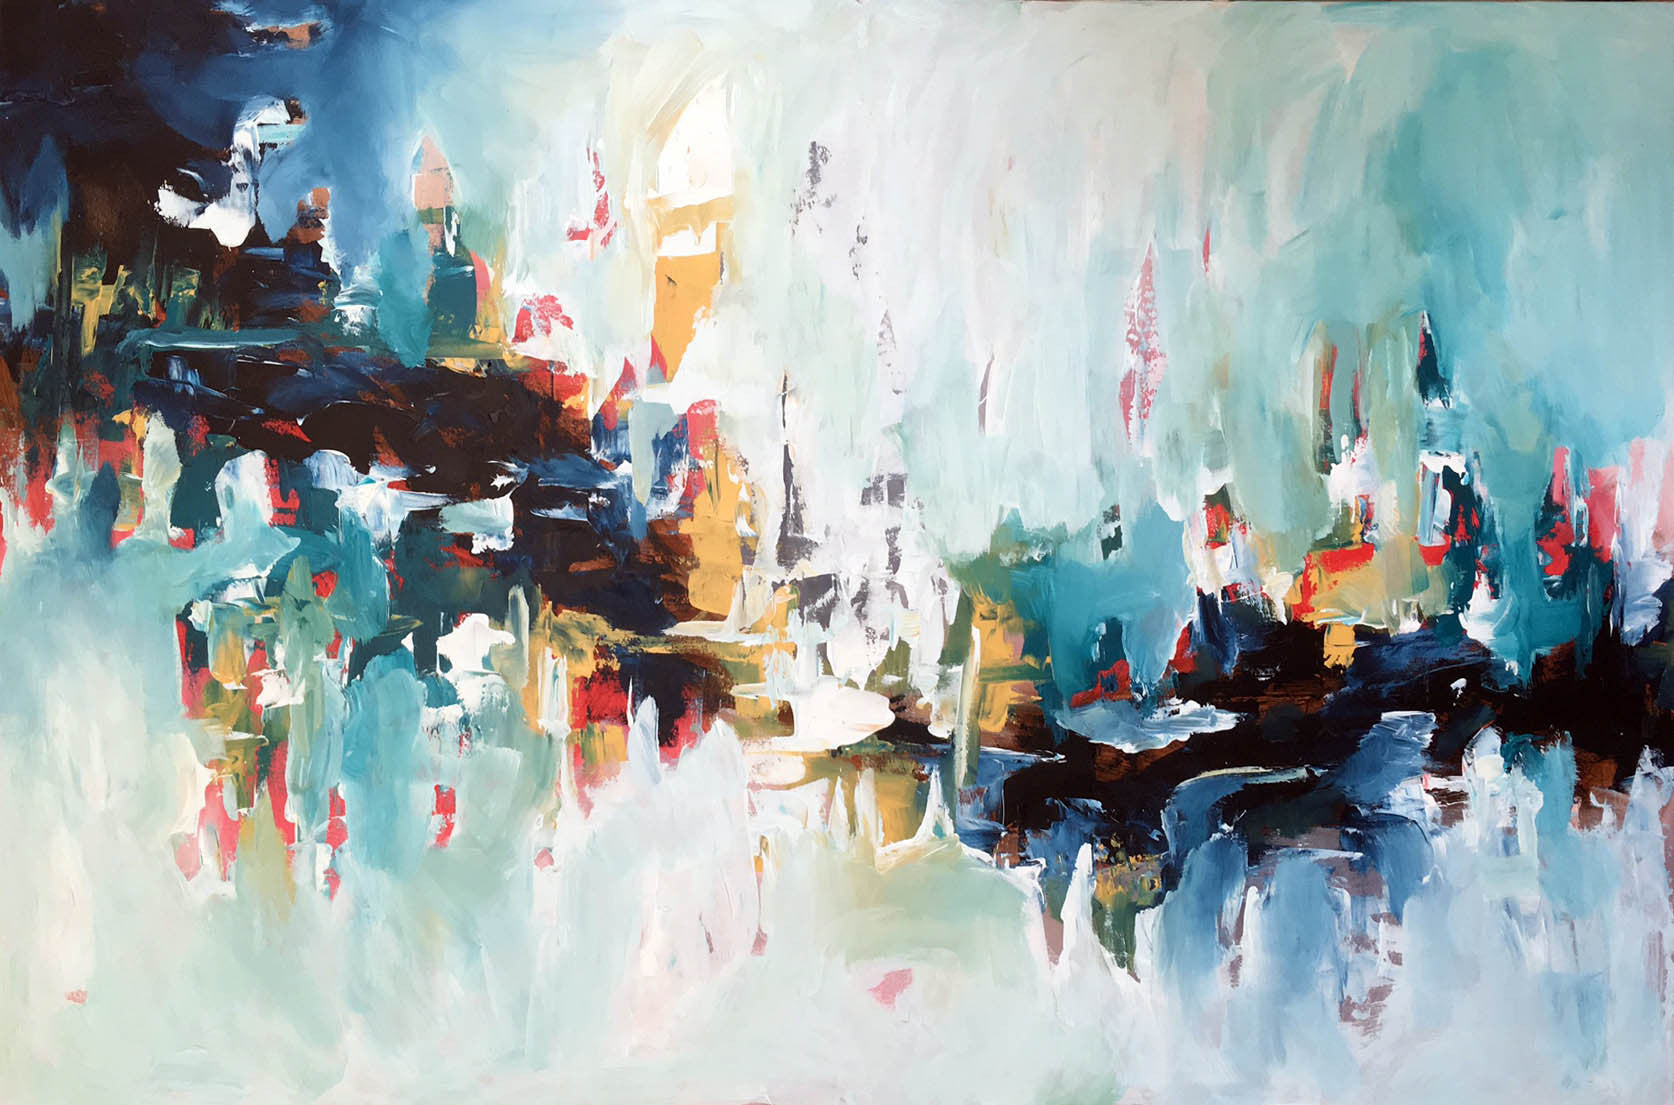 Subtraction II - 150x100 cm - Original Painting-OmarObaid.com